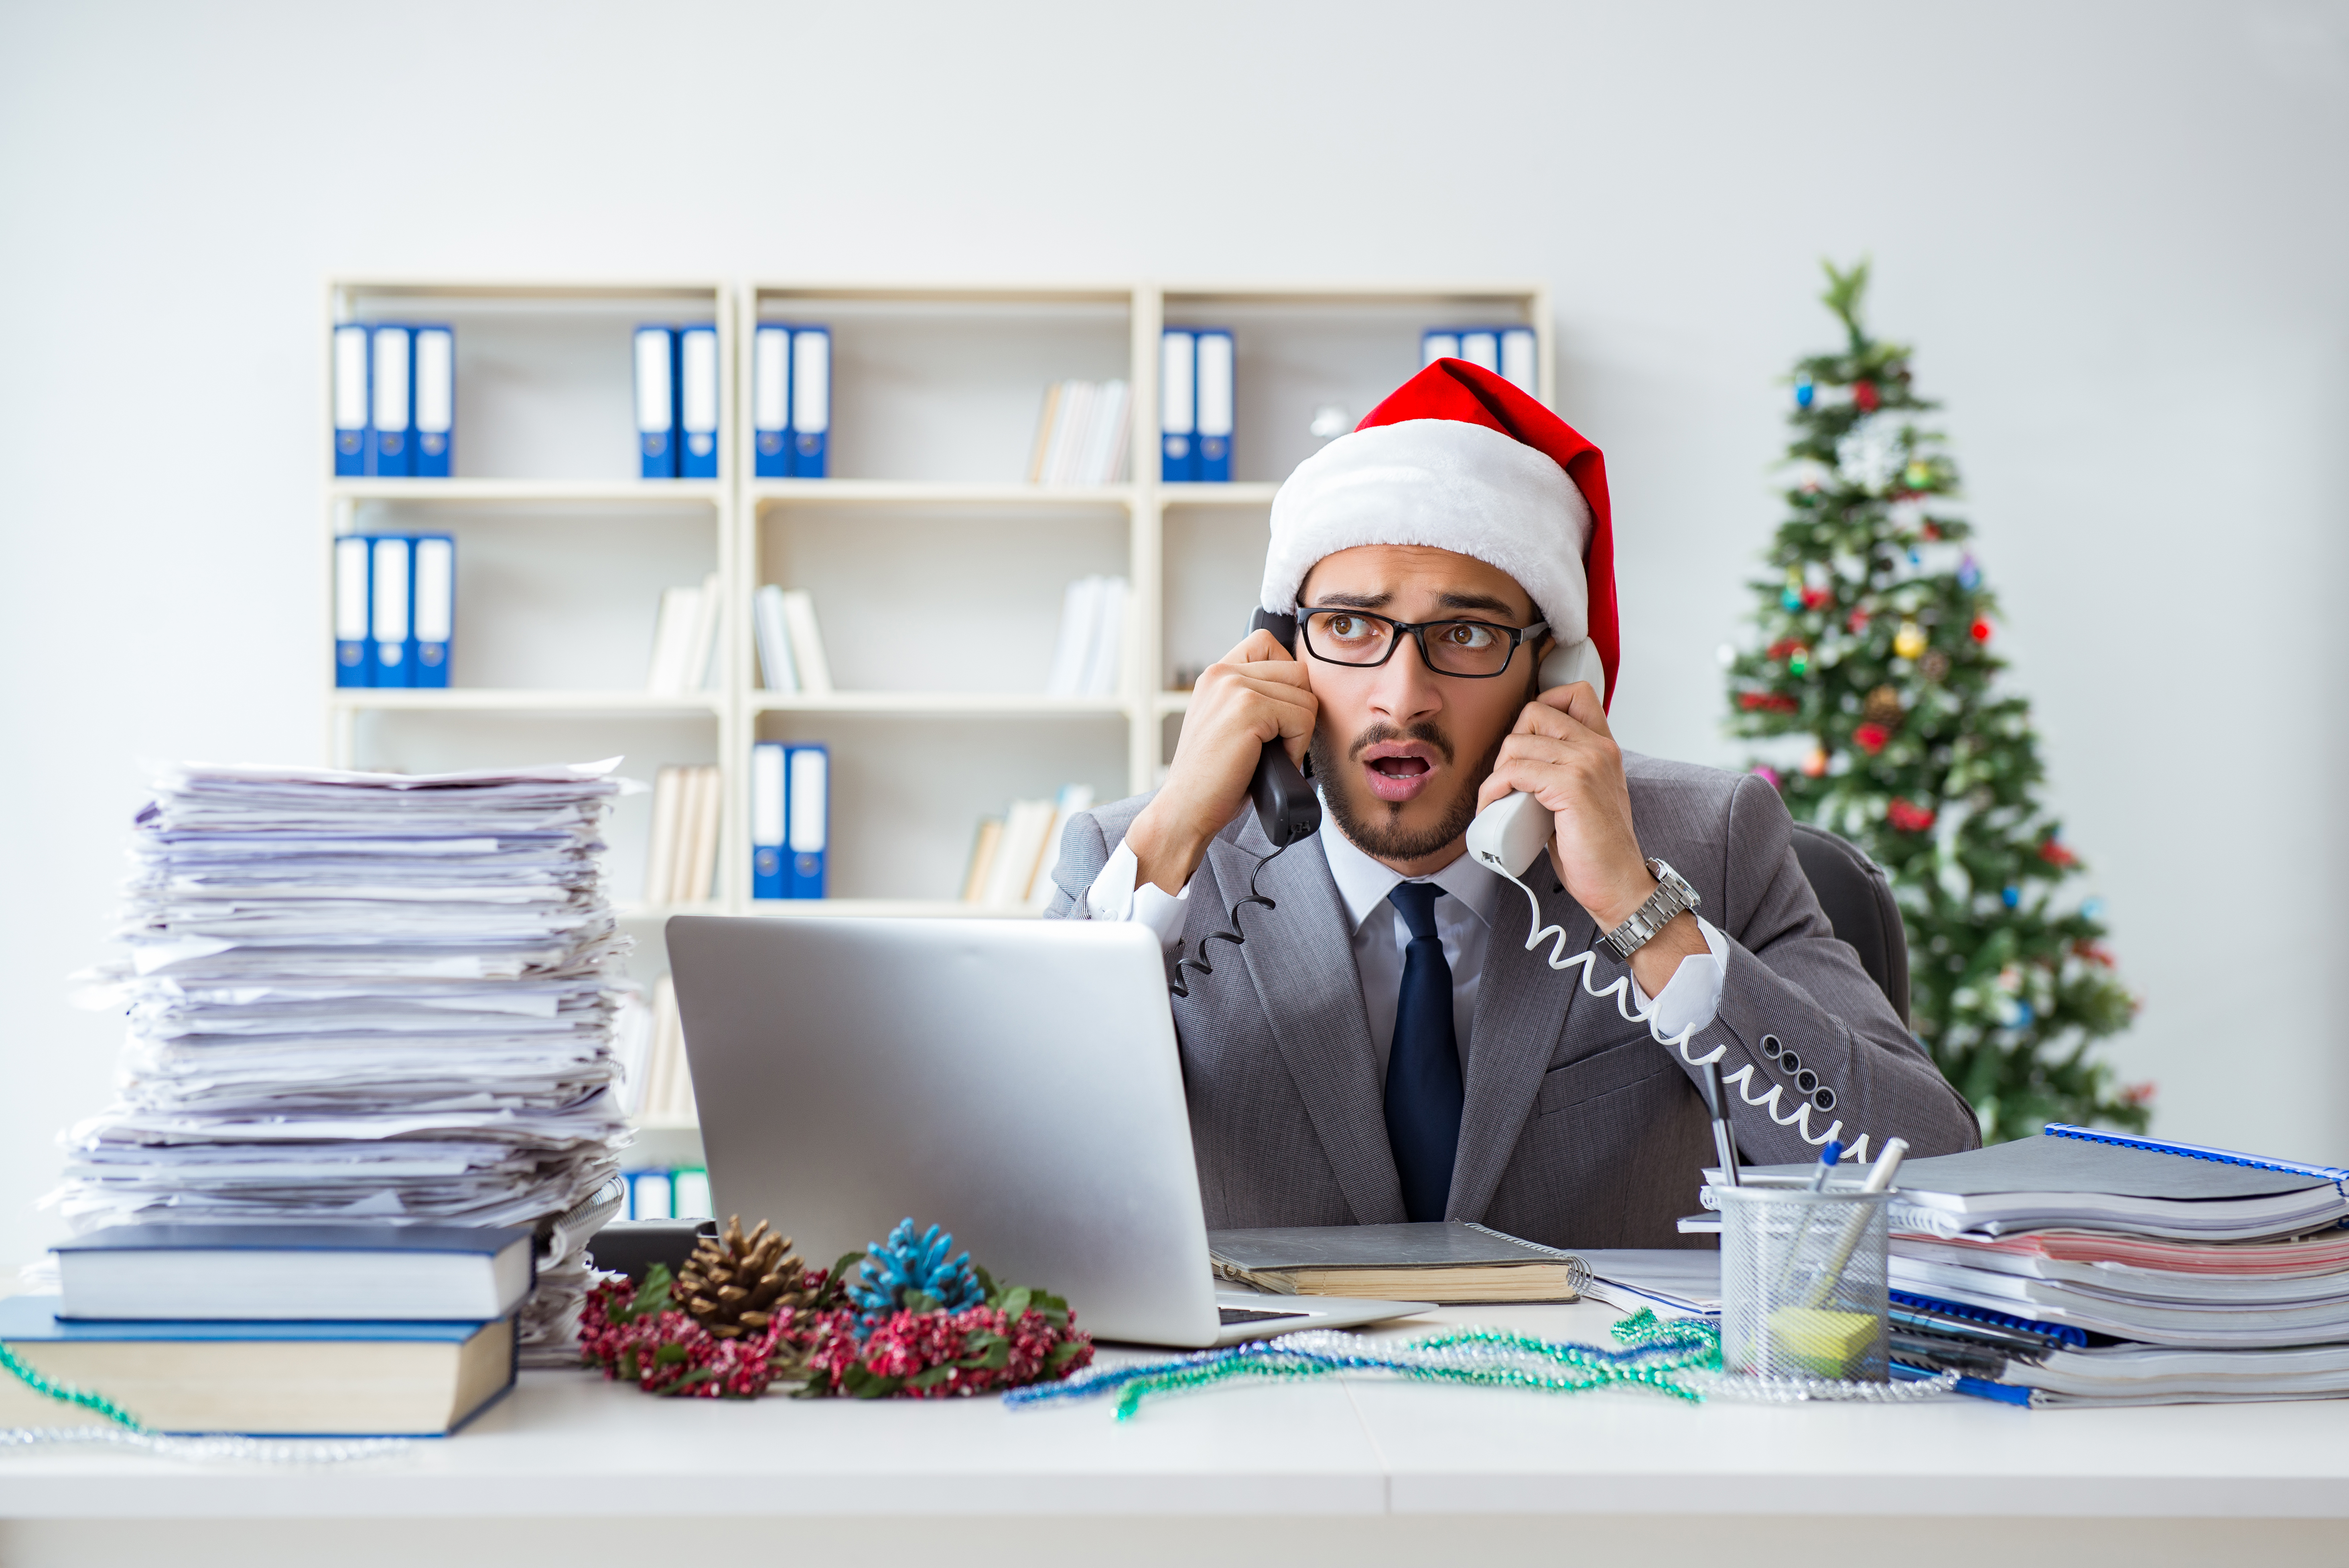 Canva - Young Businessman Celebrating Christmas in the Office